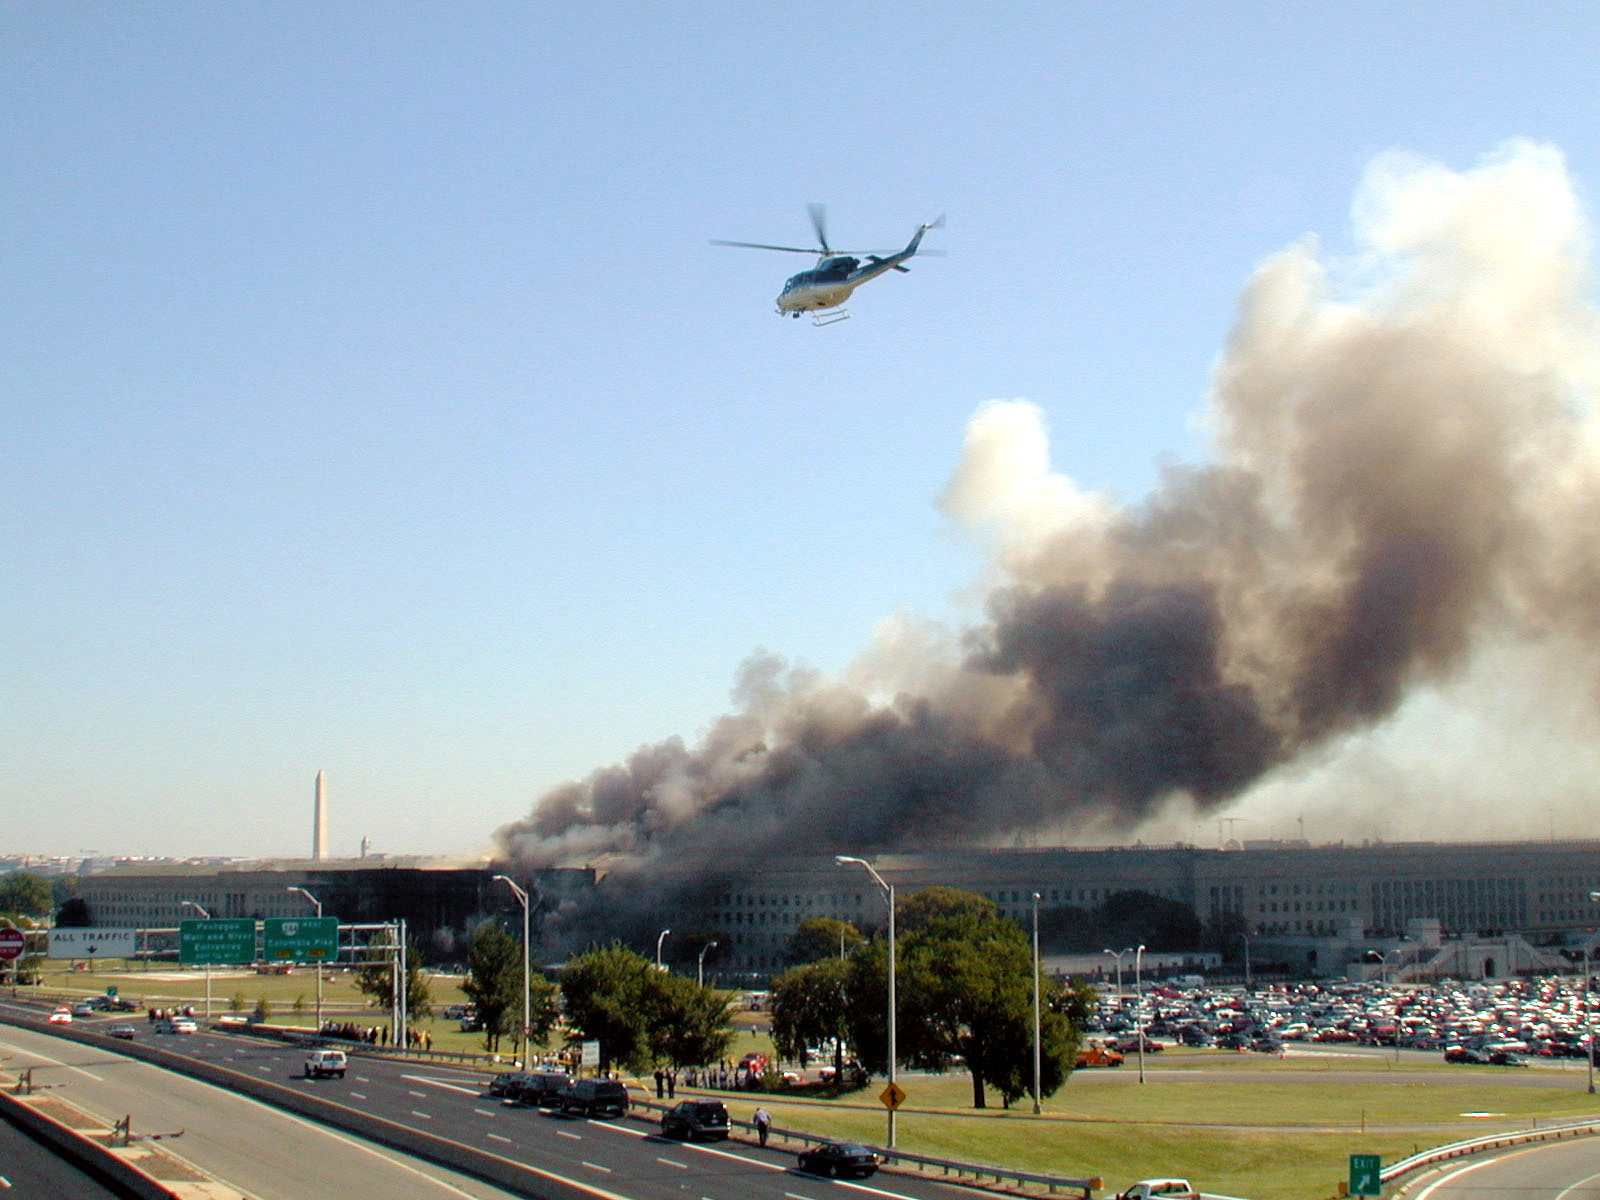 A helicopter flies over the area as smoke pours from the southwest corner of the Pentagon Building